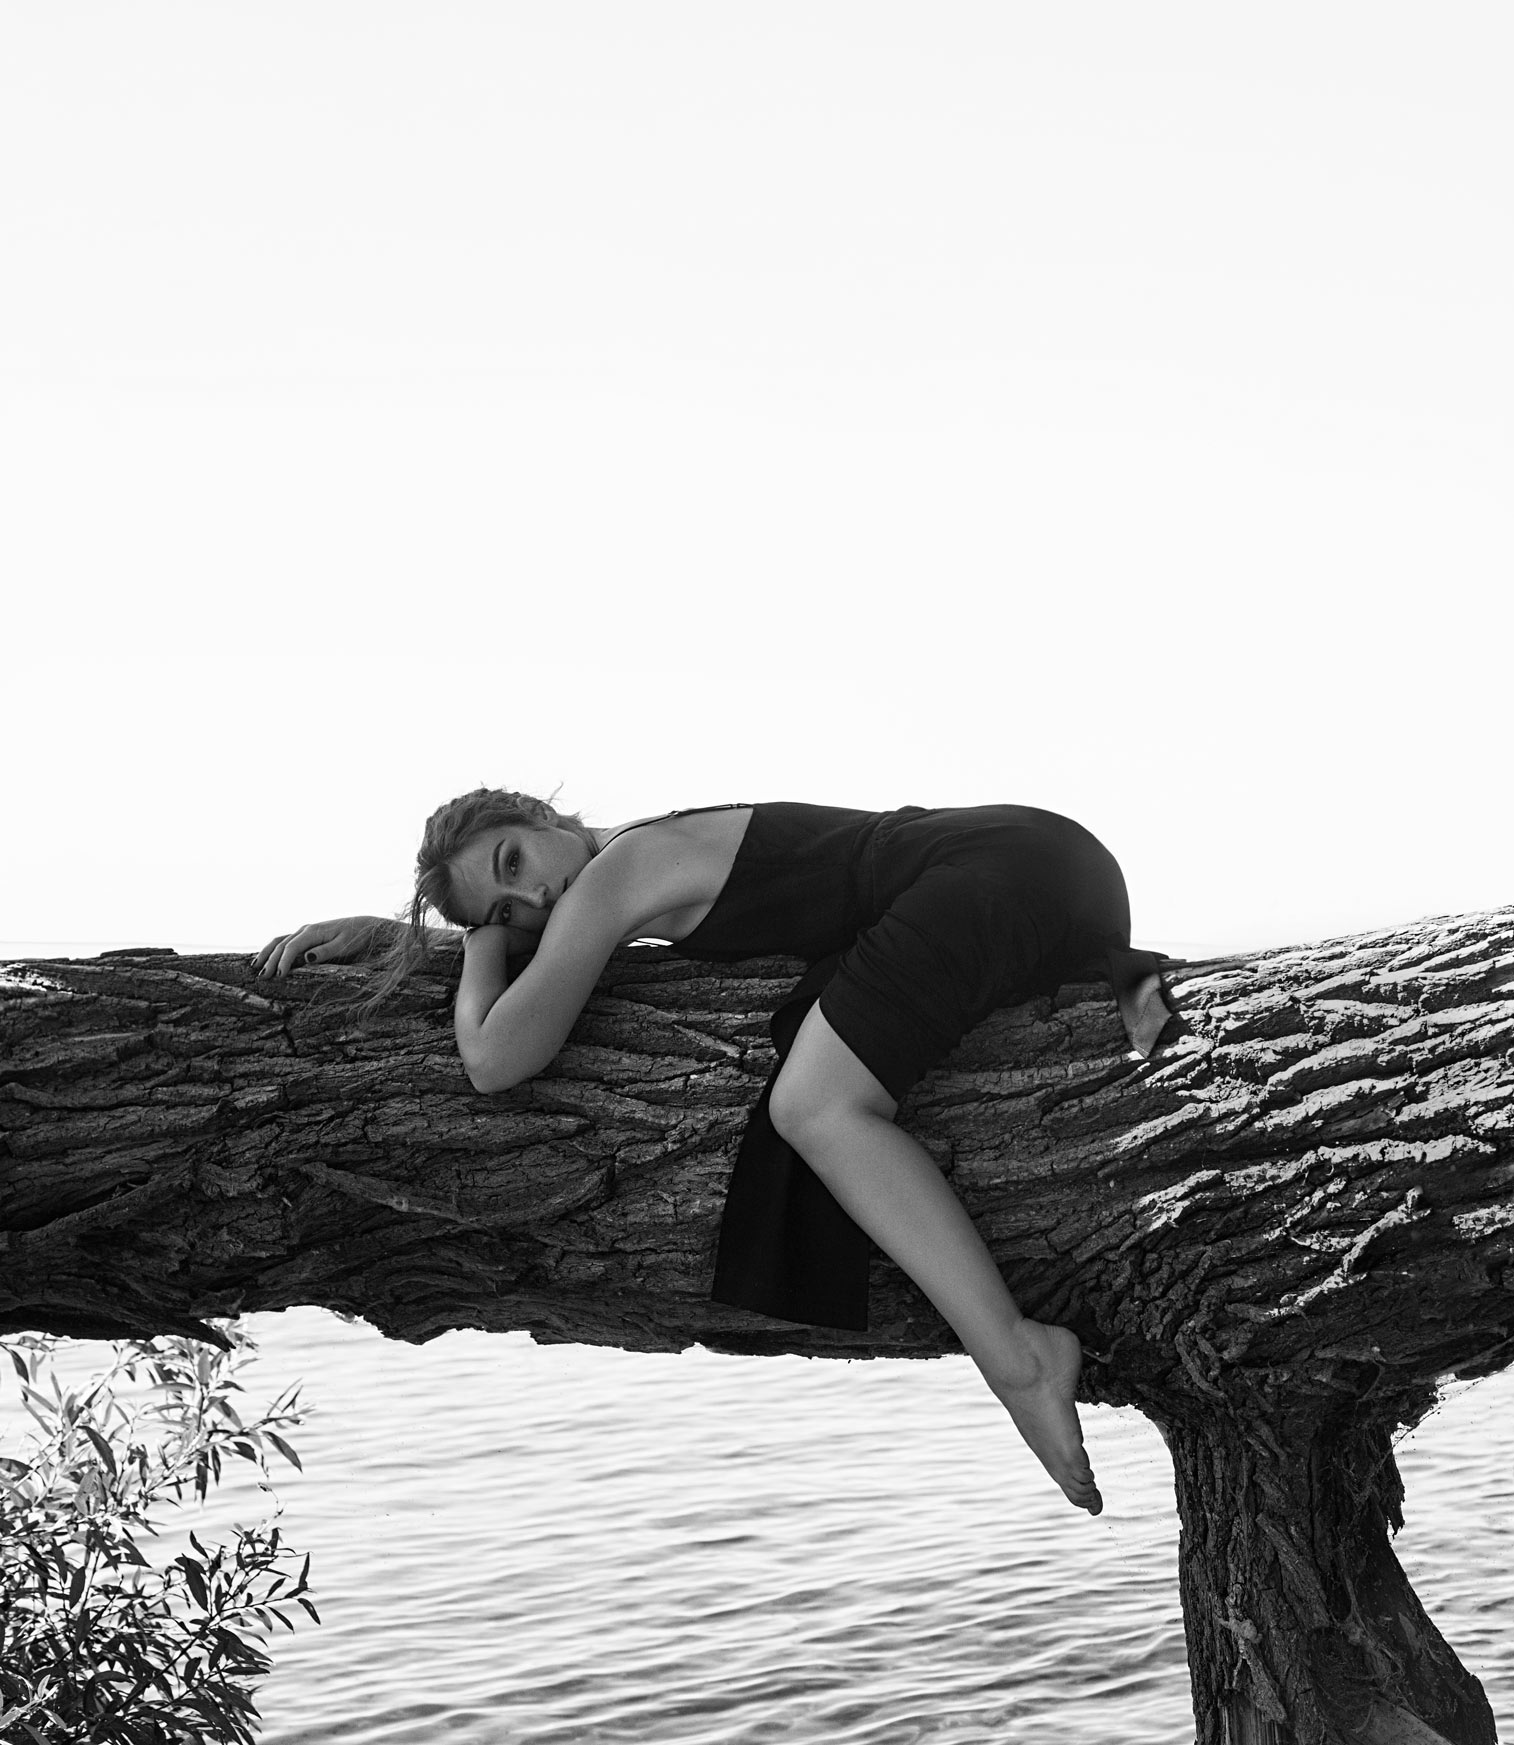 Photo session in nature by the St. Lawrence River with celebrity Cynthia Dulude. Photographed by Dariane Sanche.